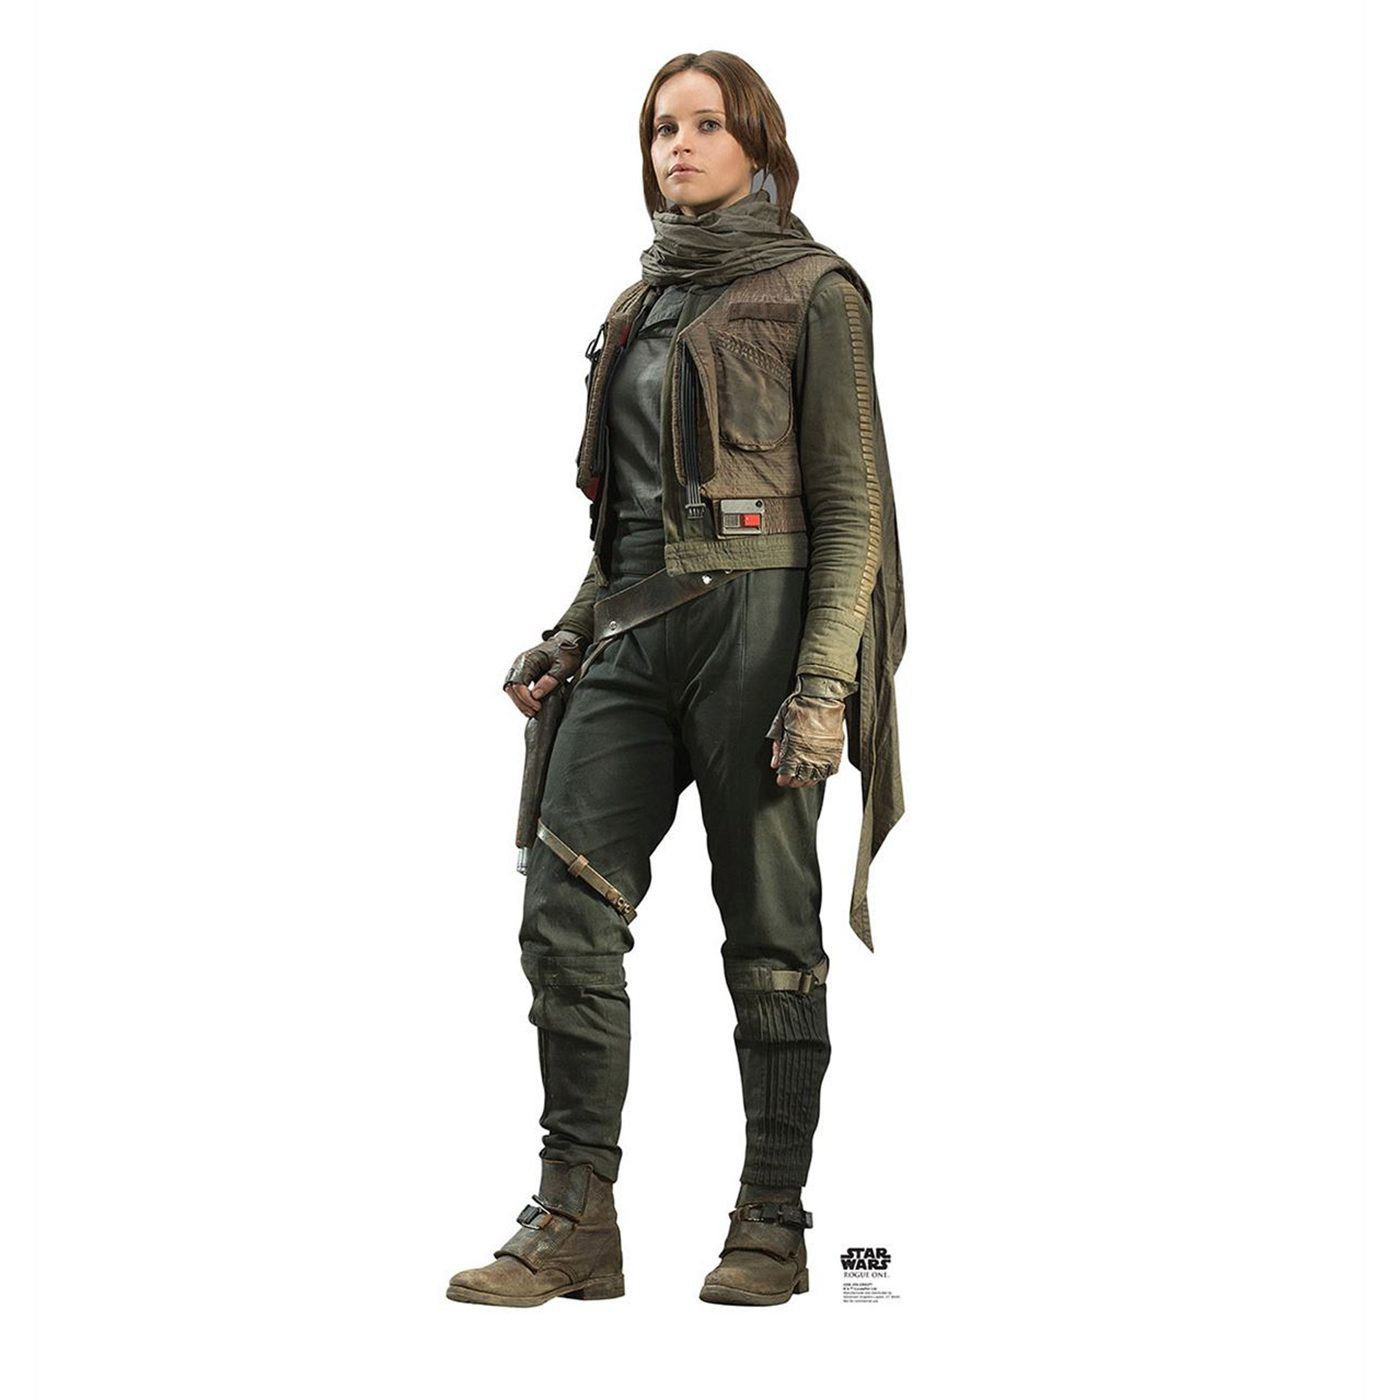 Star Wars Rogue One Jyn Erso Cardboard Cutout